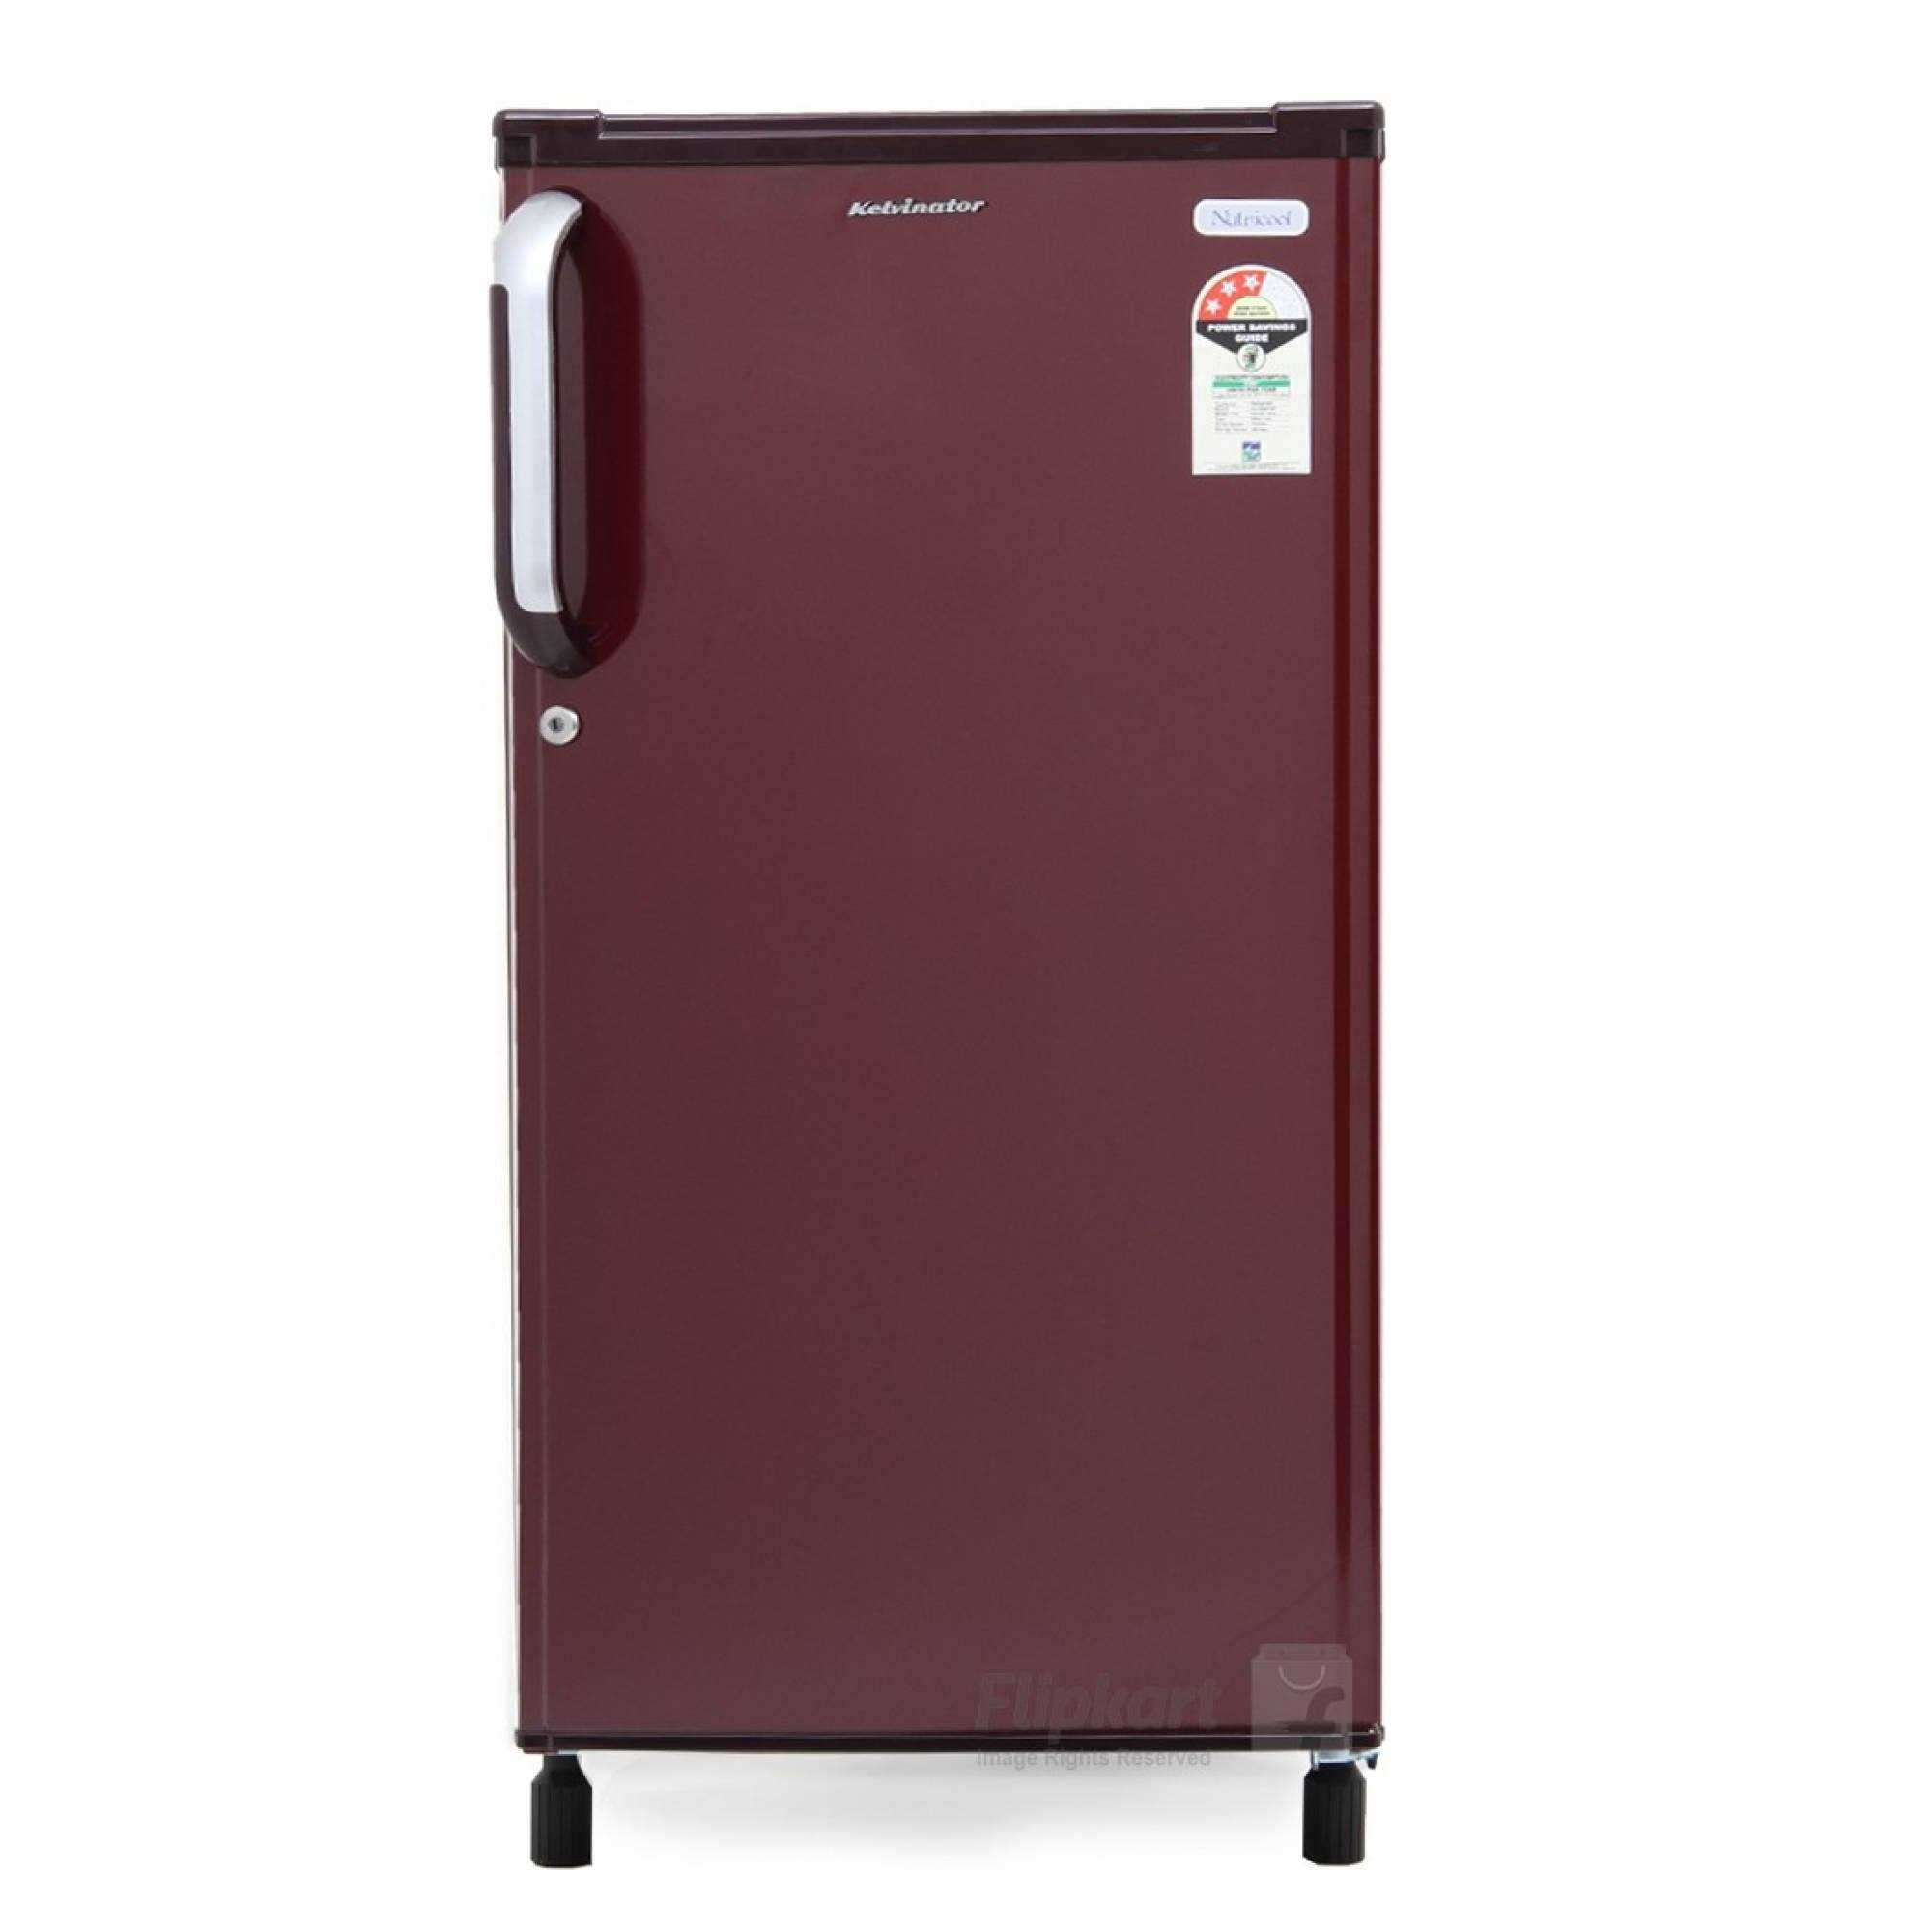 Door price kelvinator refrigerator single door price list for 1 door chiller